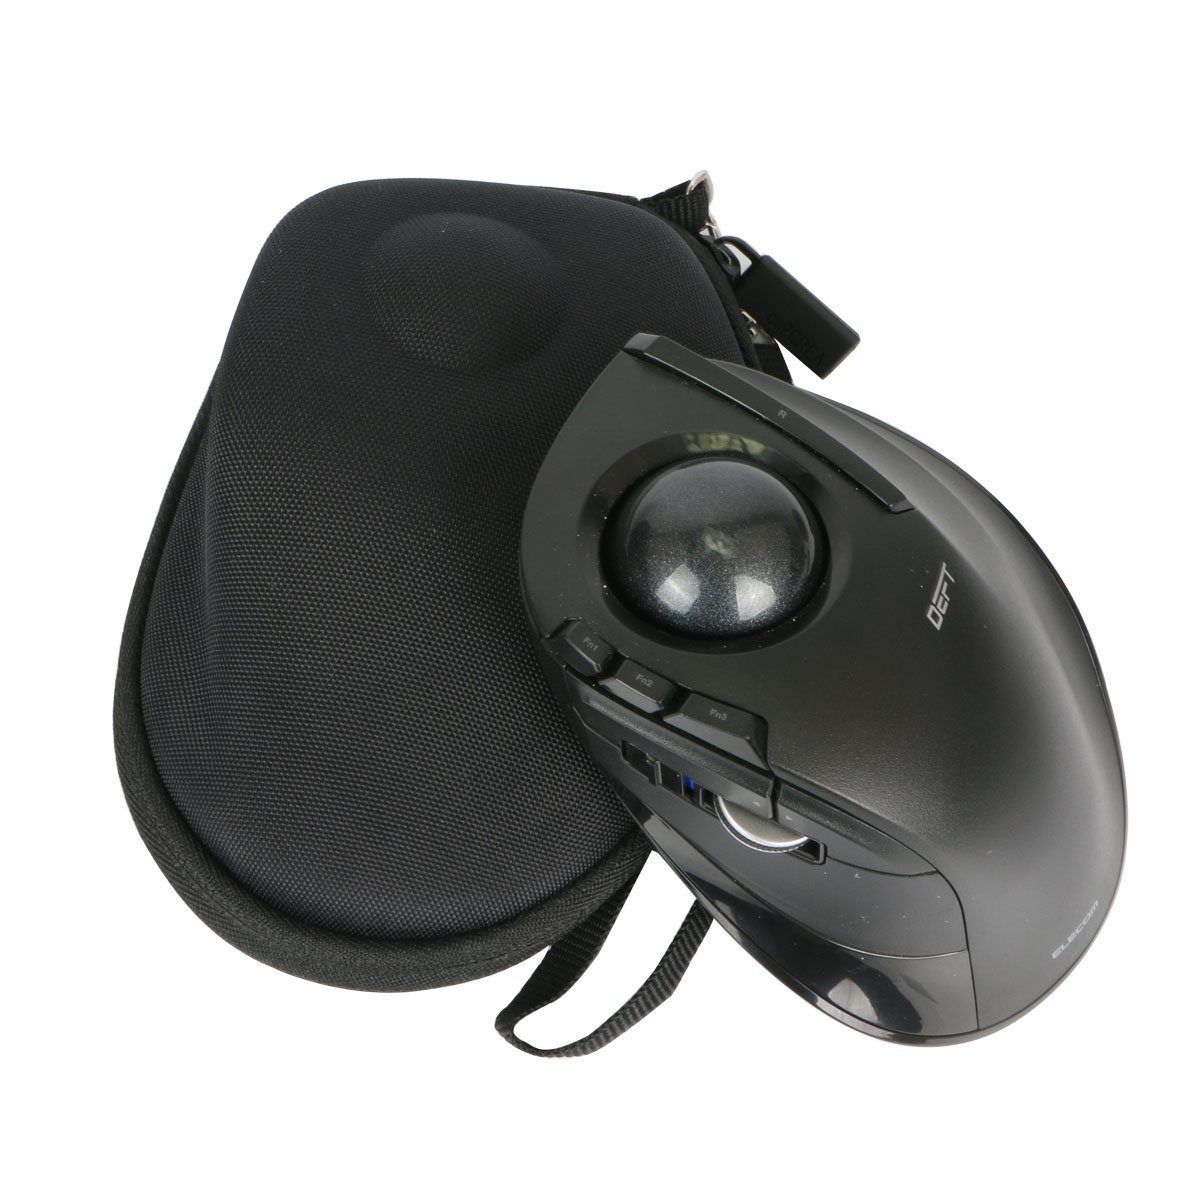 Hard Travel Case for ELECOM Wireless index finger Trackball mouse EX-G series M-DT2DRBK by co2CREA